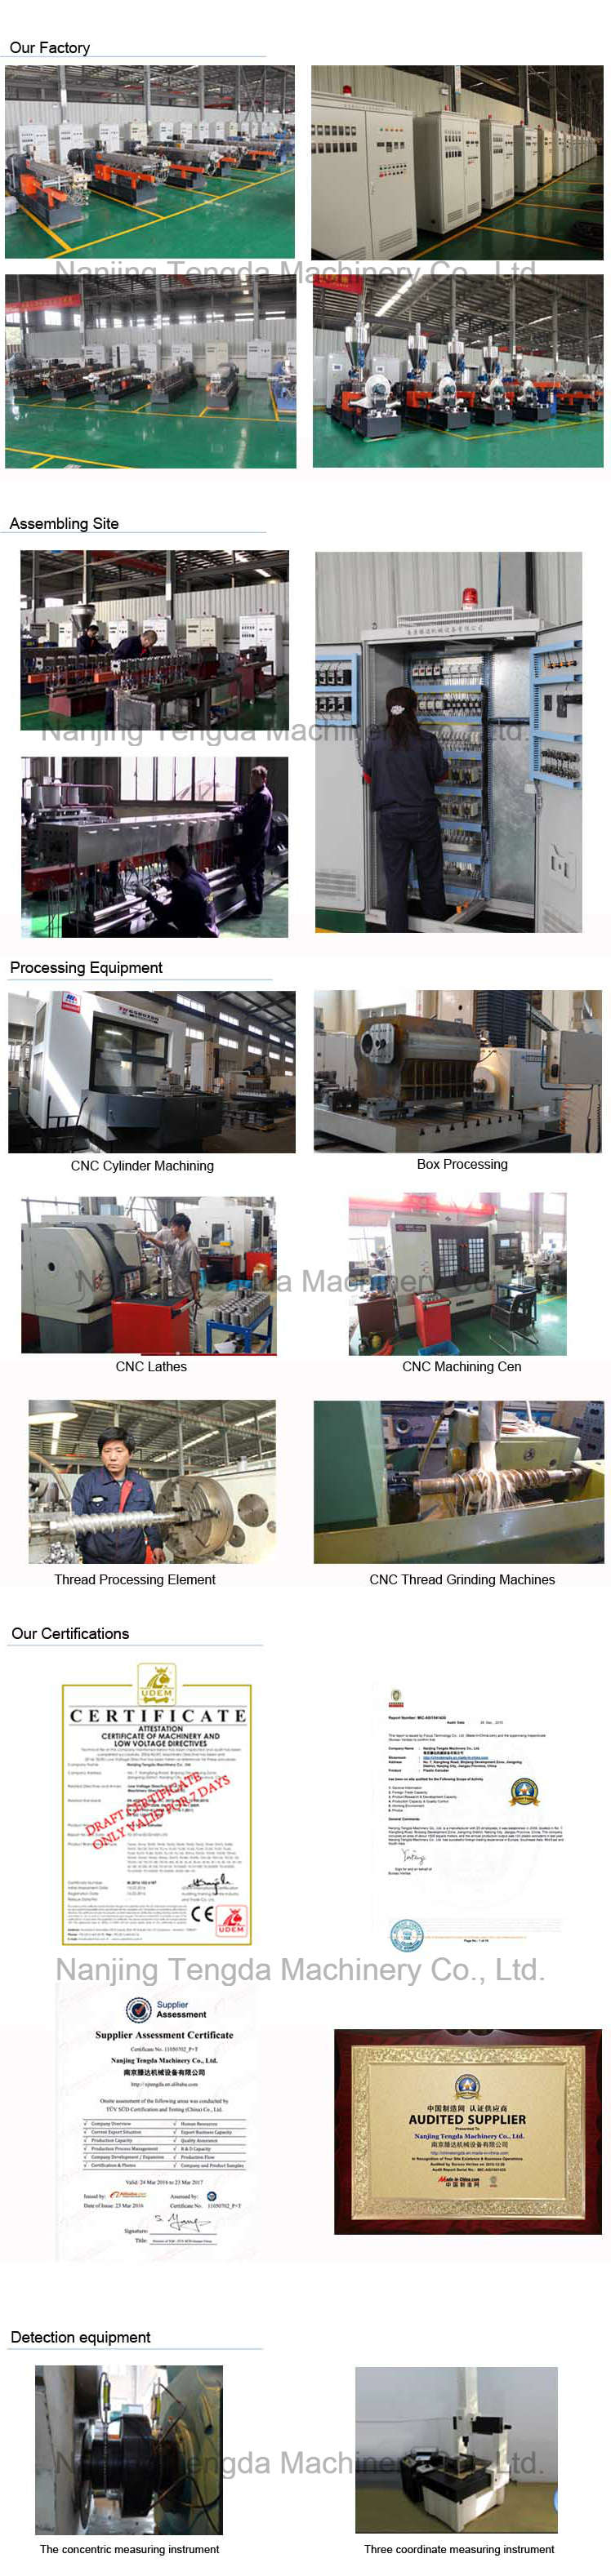 Alloy Twin Screw Extruder with High Output